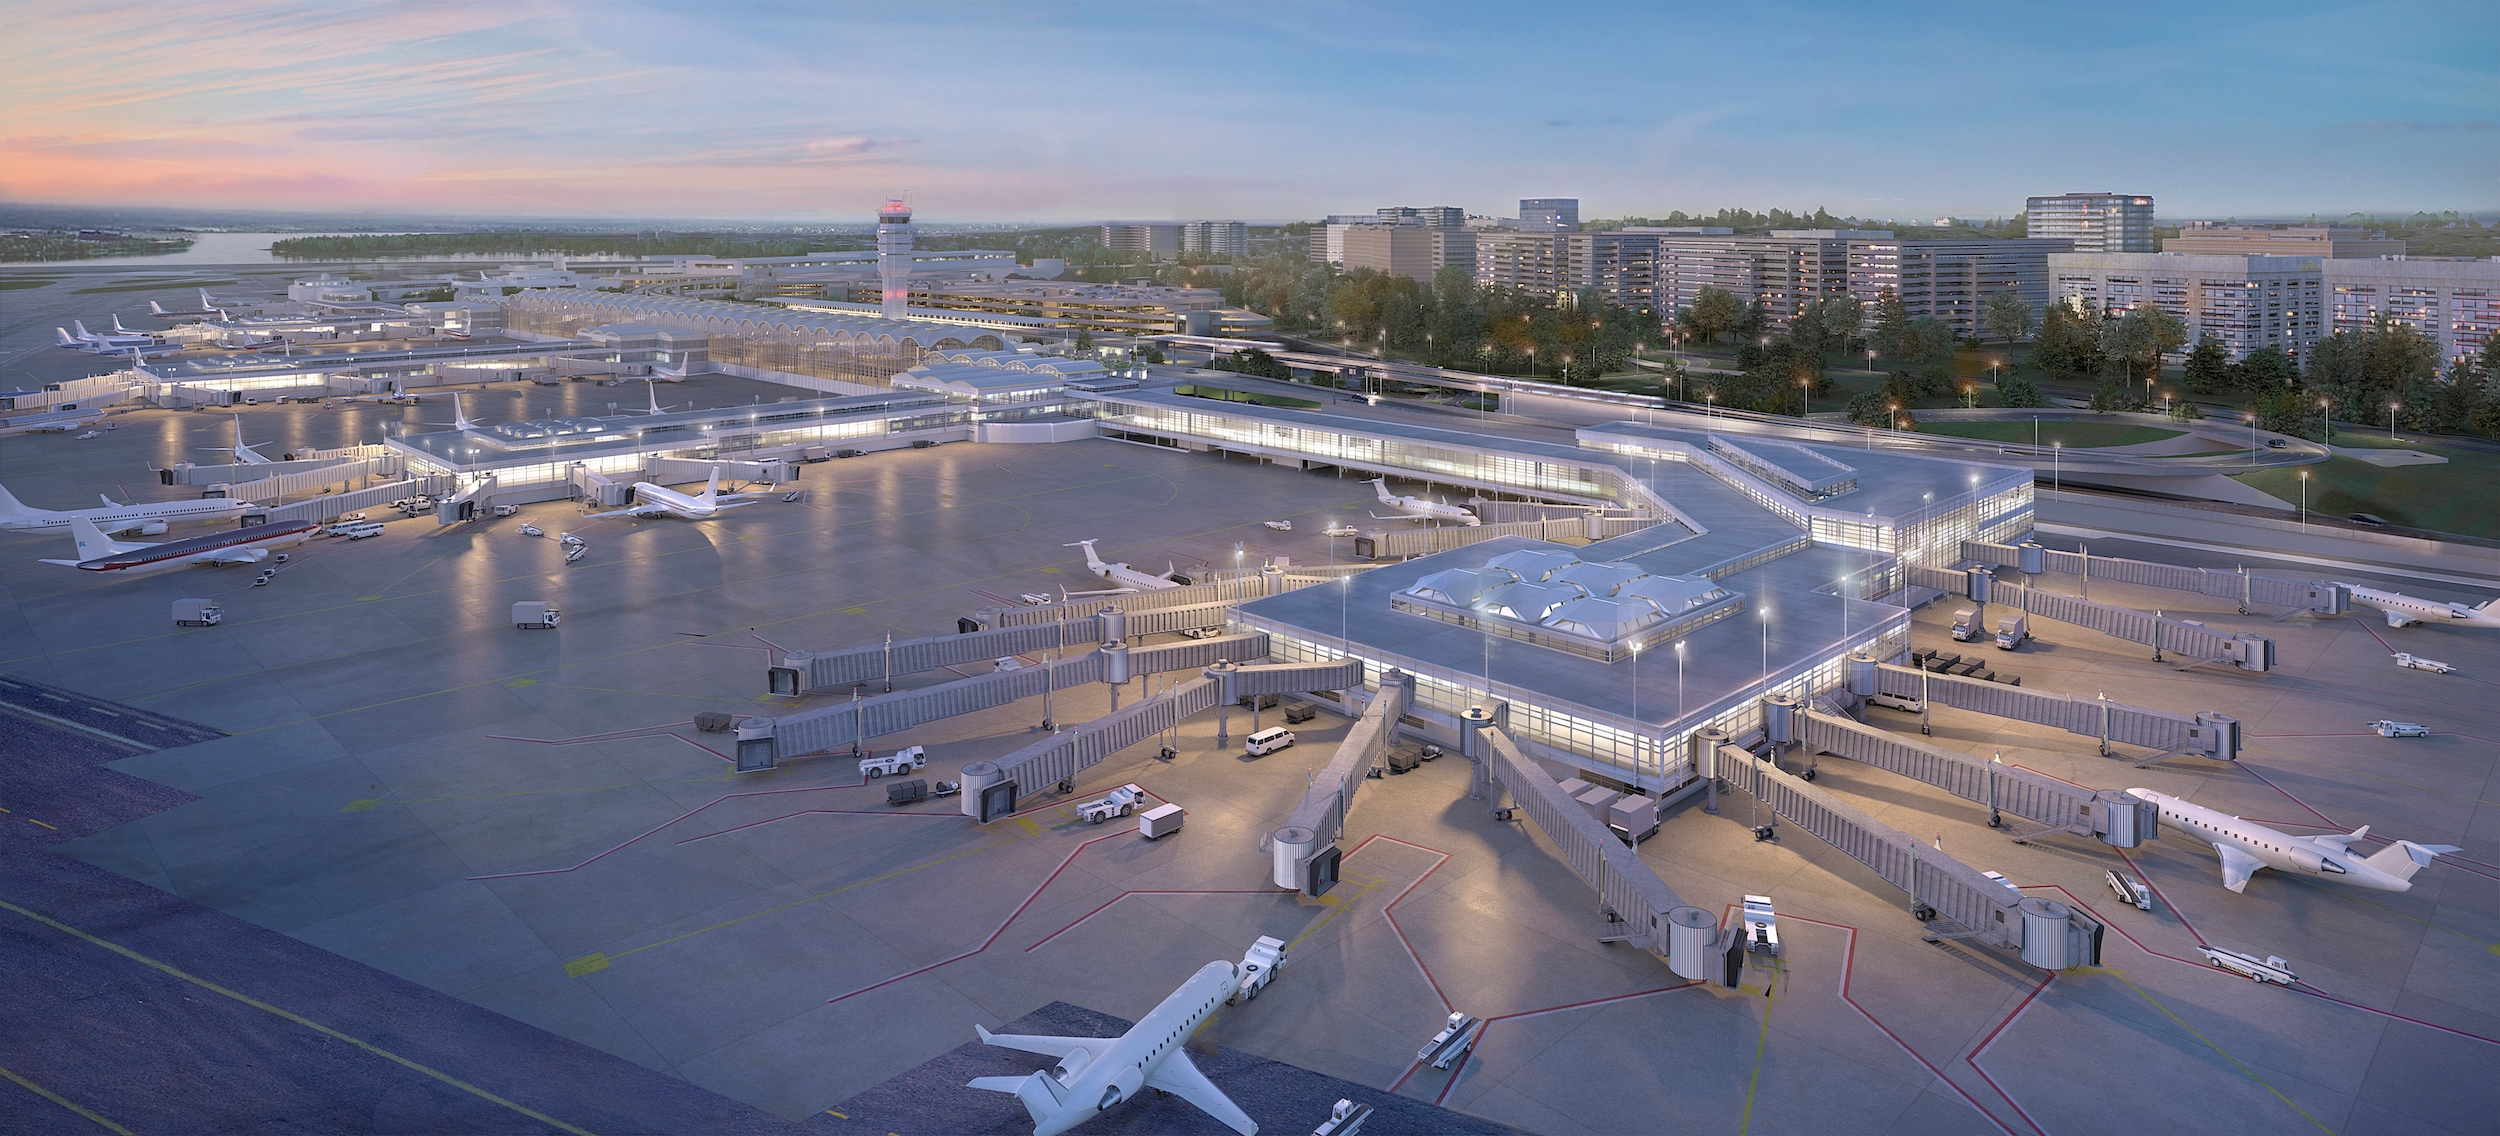 Artist's rendering of the new 14-gate concourse. This and more images available at  http://www.flyreagan.com/dca/project-journey-renderings .